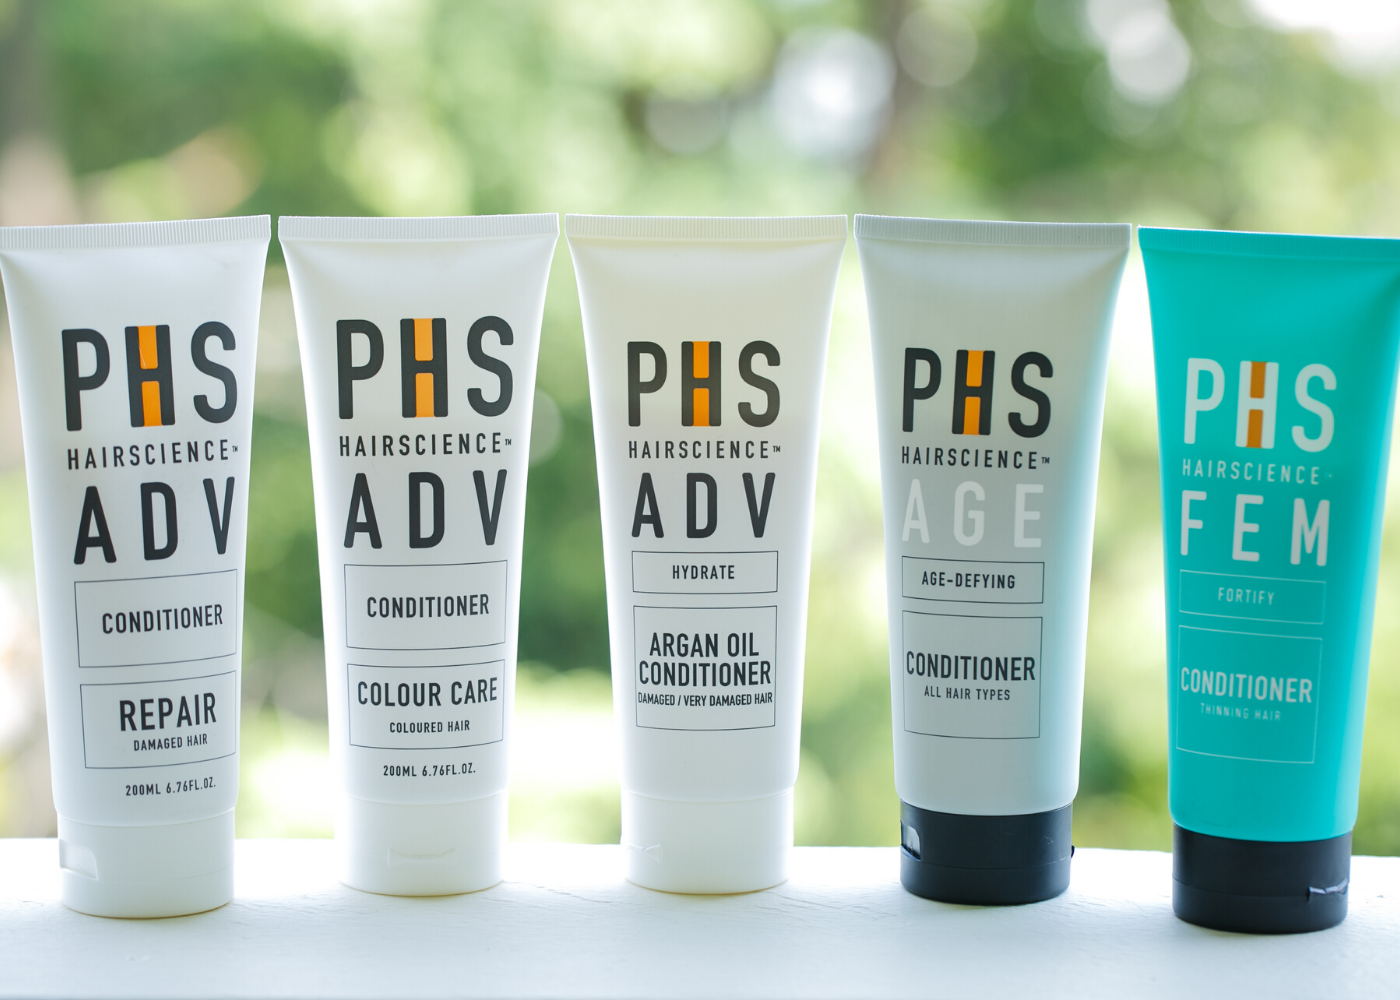 Phs hairscience conditioner 3-step daily hair care routine